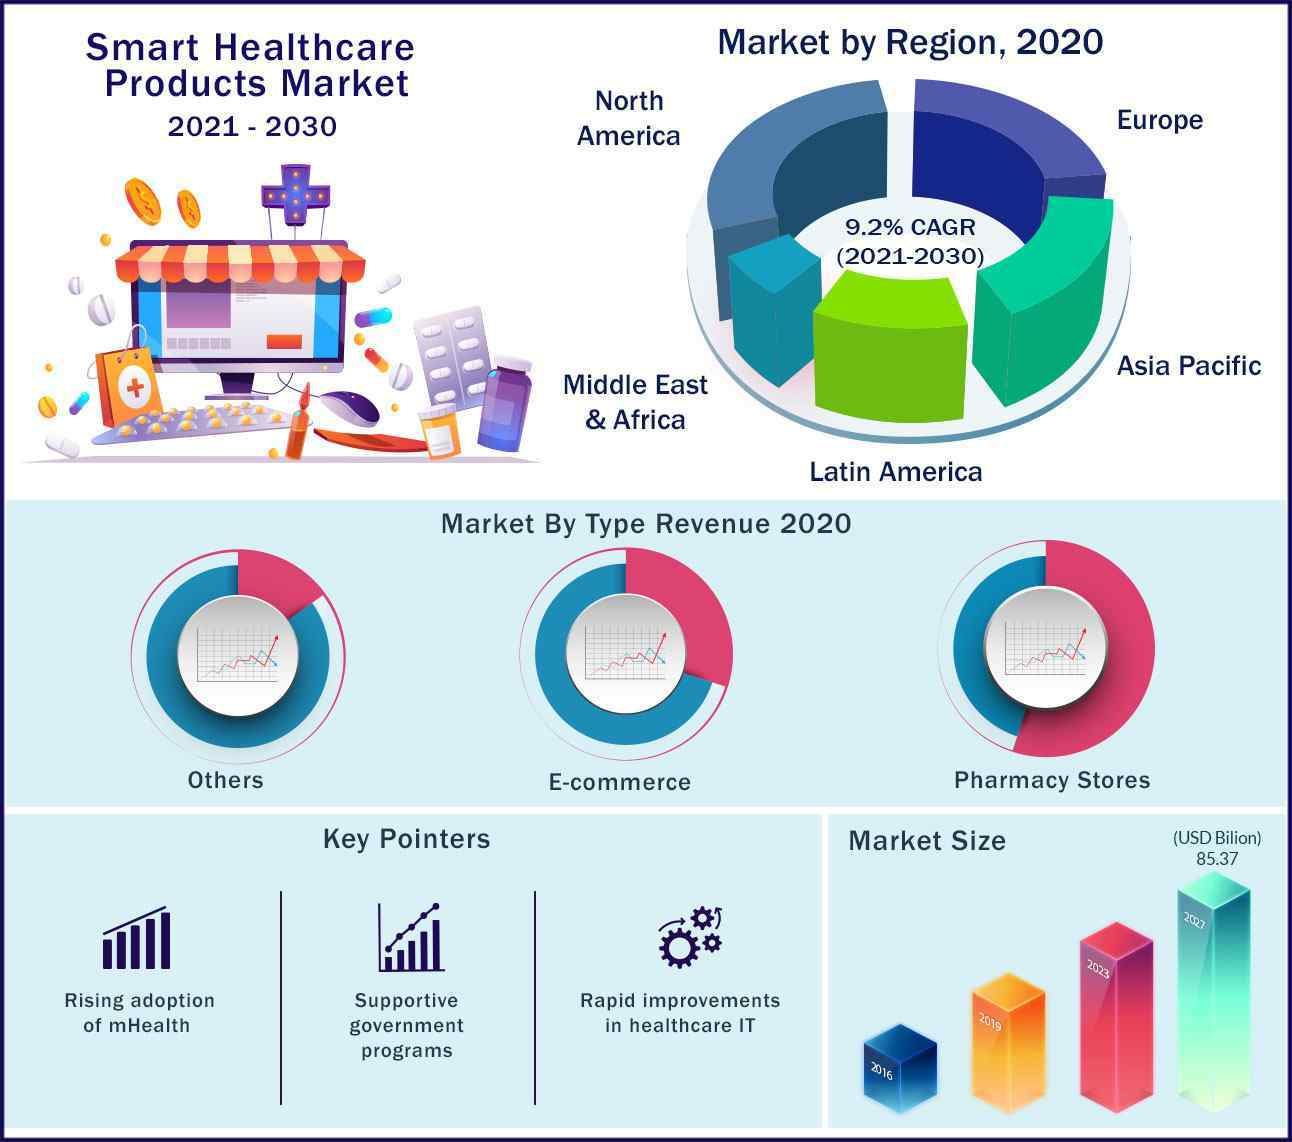 Global Smart Healthcare Products Market 2021 to 2030